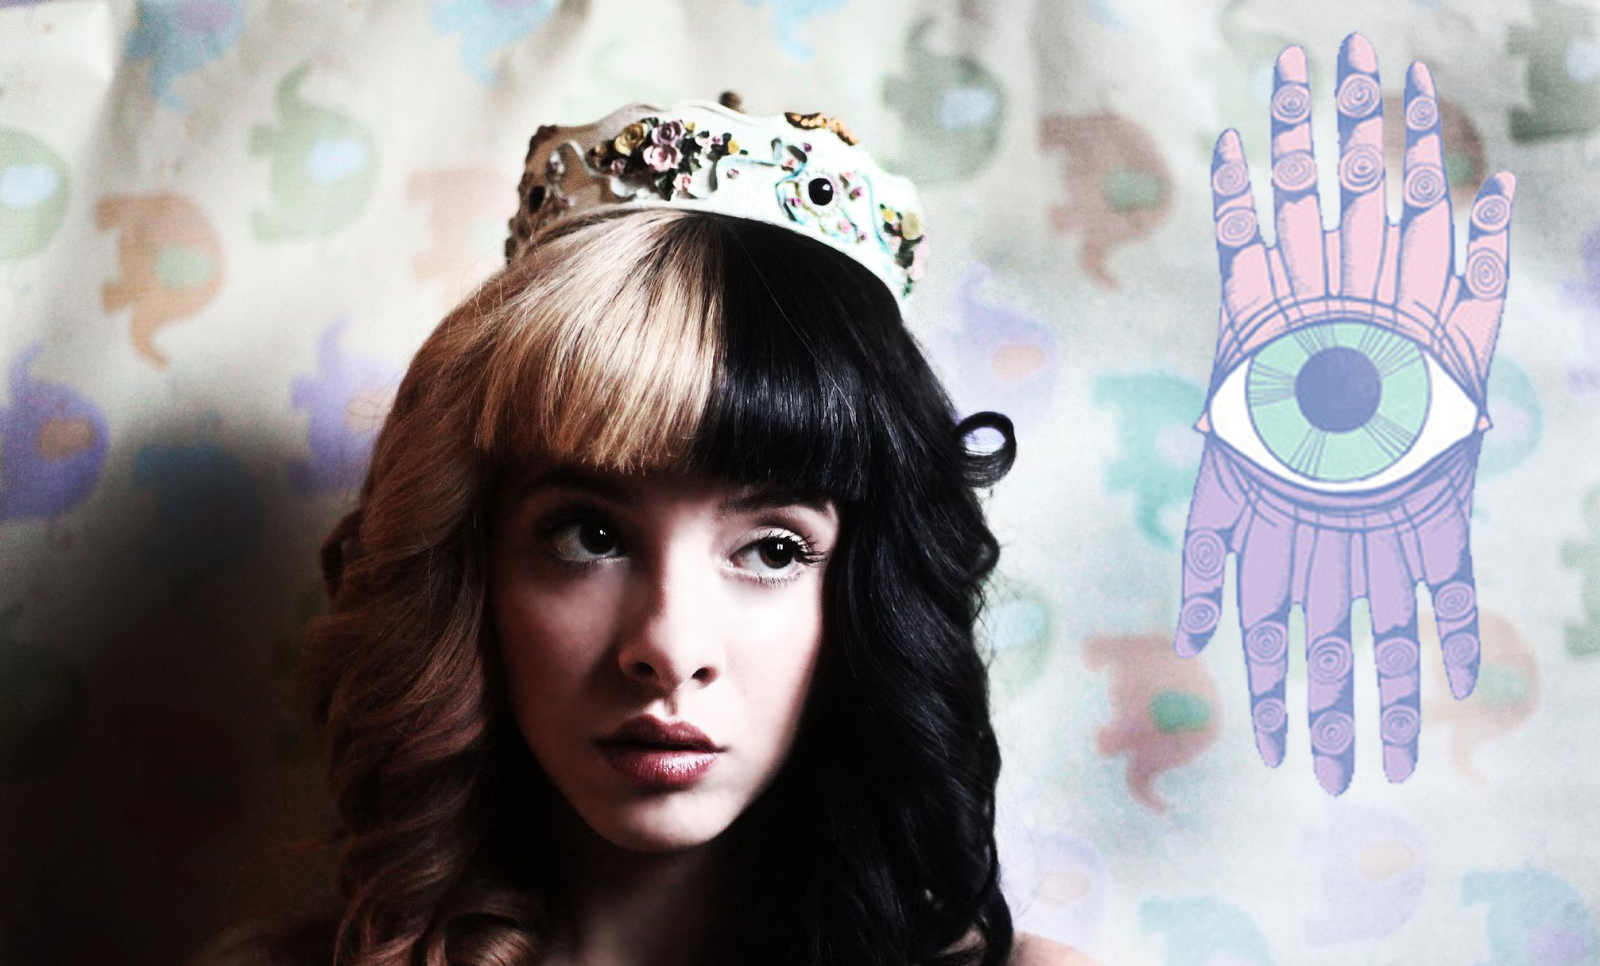 Byt Interviews Melanie Martinez together with 284571270178161075 furthermore Watch also F1 S6580 further 21 Tocadiscos Retro Futuristicos. on old style radio cd player